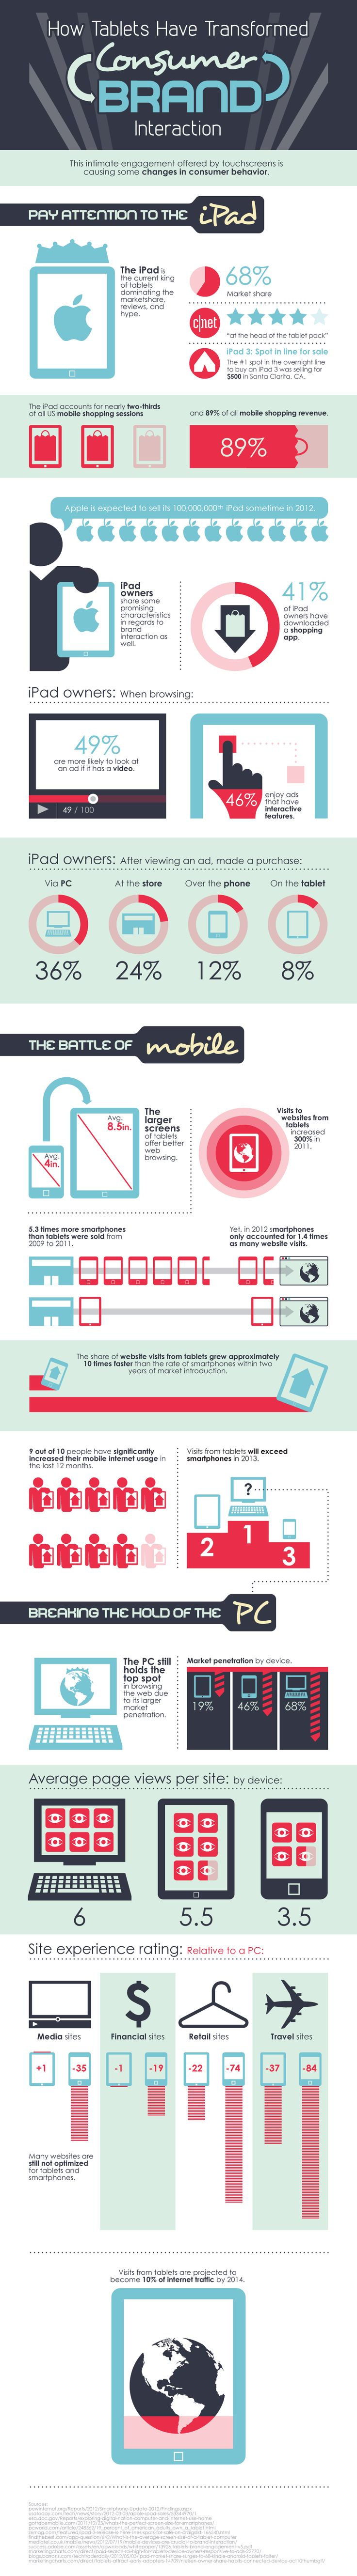 How Tablets Have Transformed #Consumer-#Brand Interaction